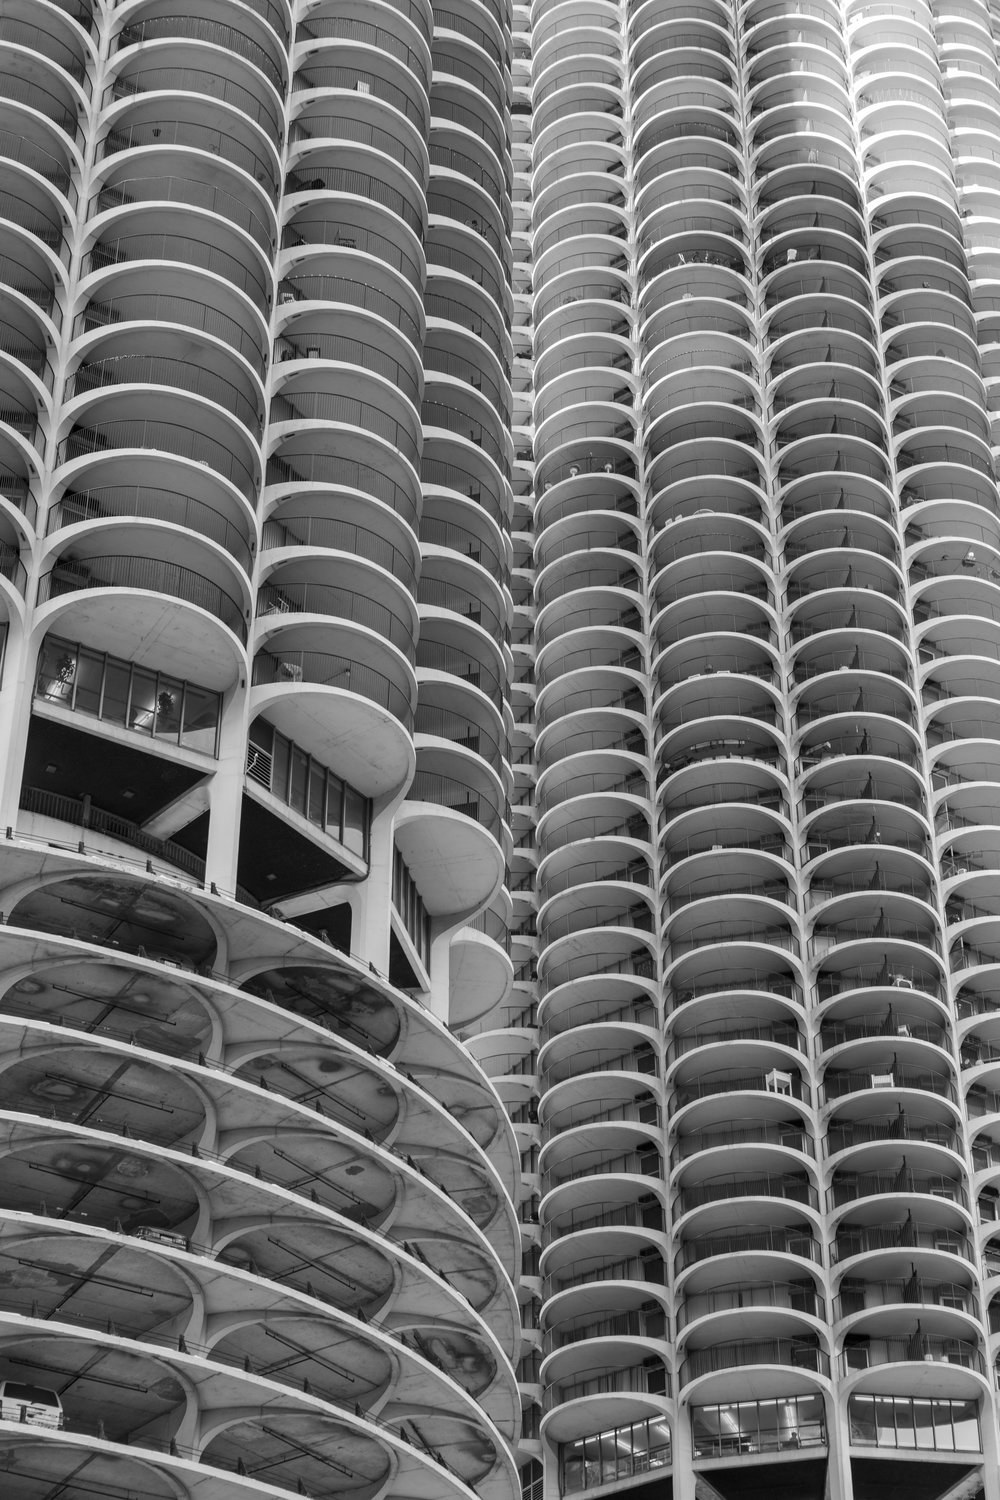 http://www.tjsimonphotography.com/chicago-prints/1970something